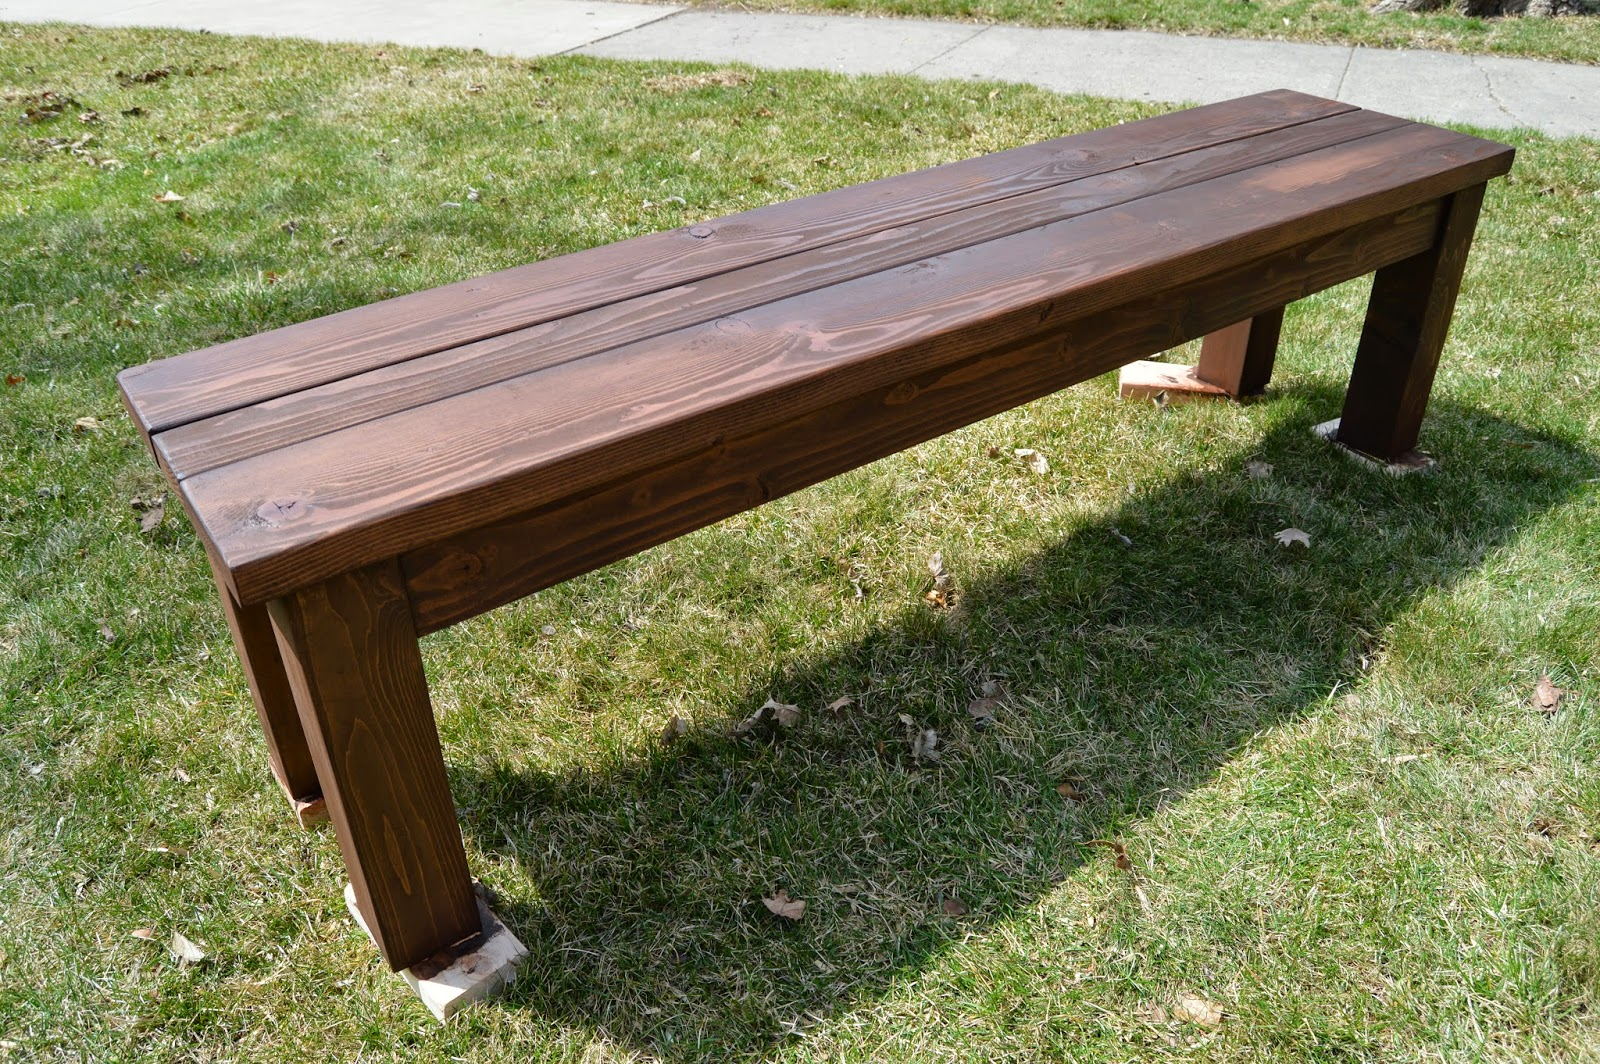 Simple Wooden Bench Designs ~ Kruse s workshop simple indoor outdoor rustic bench plan